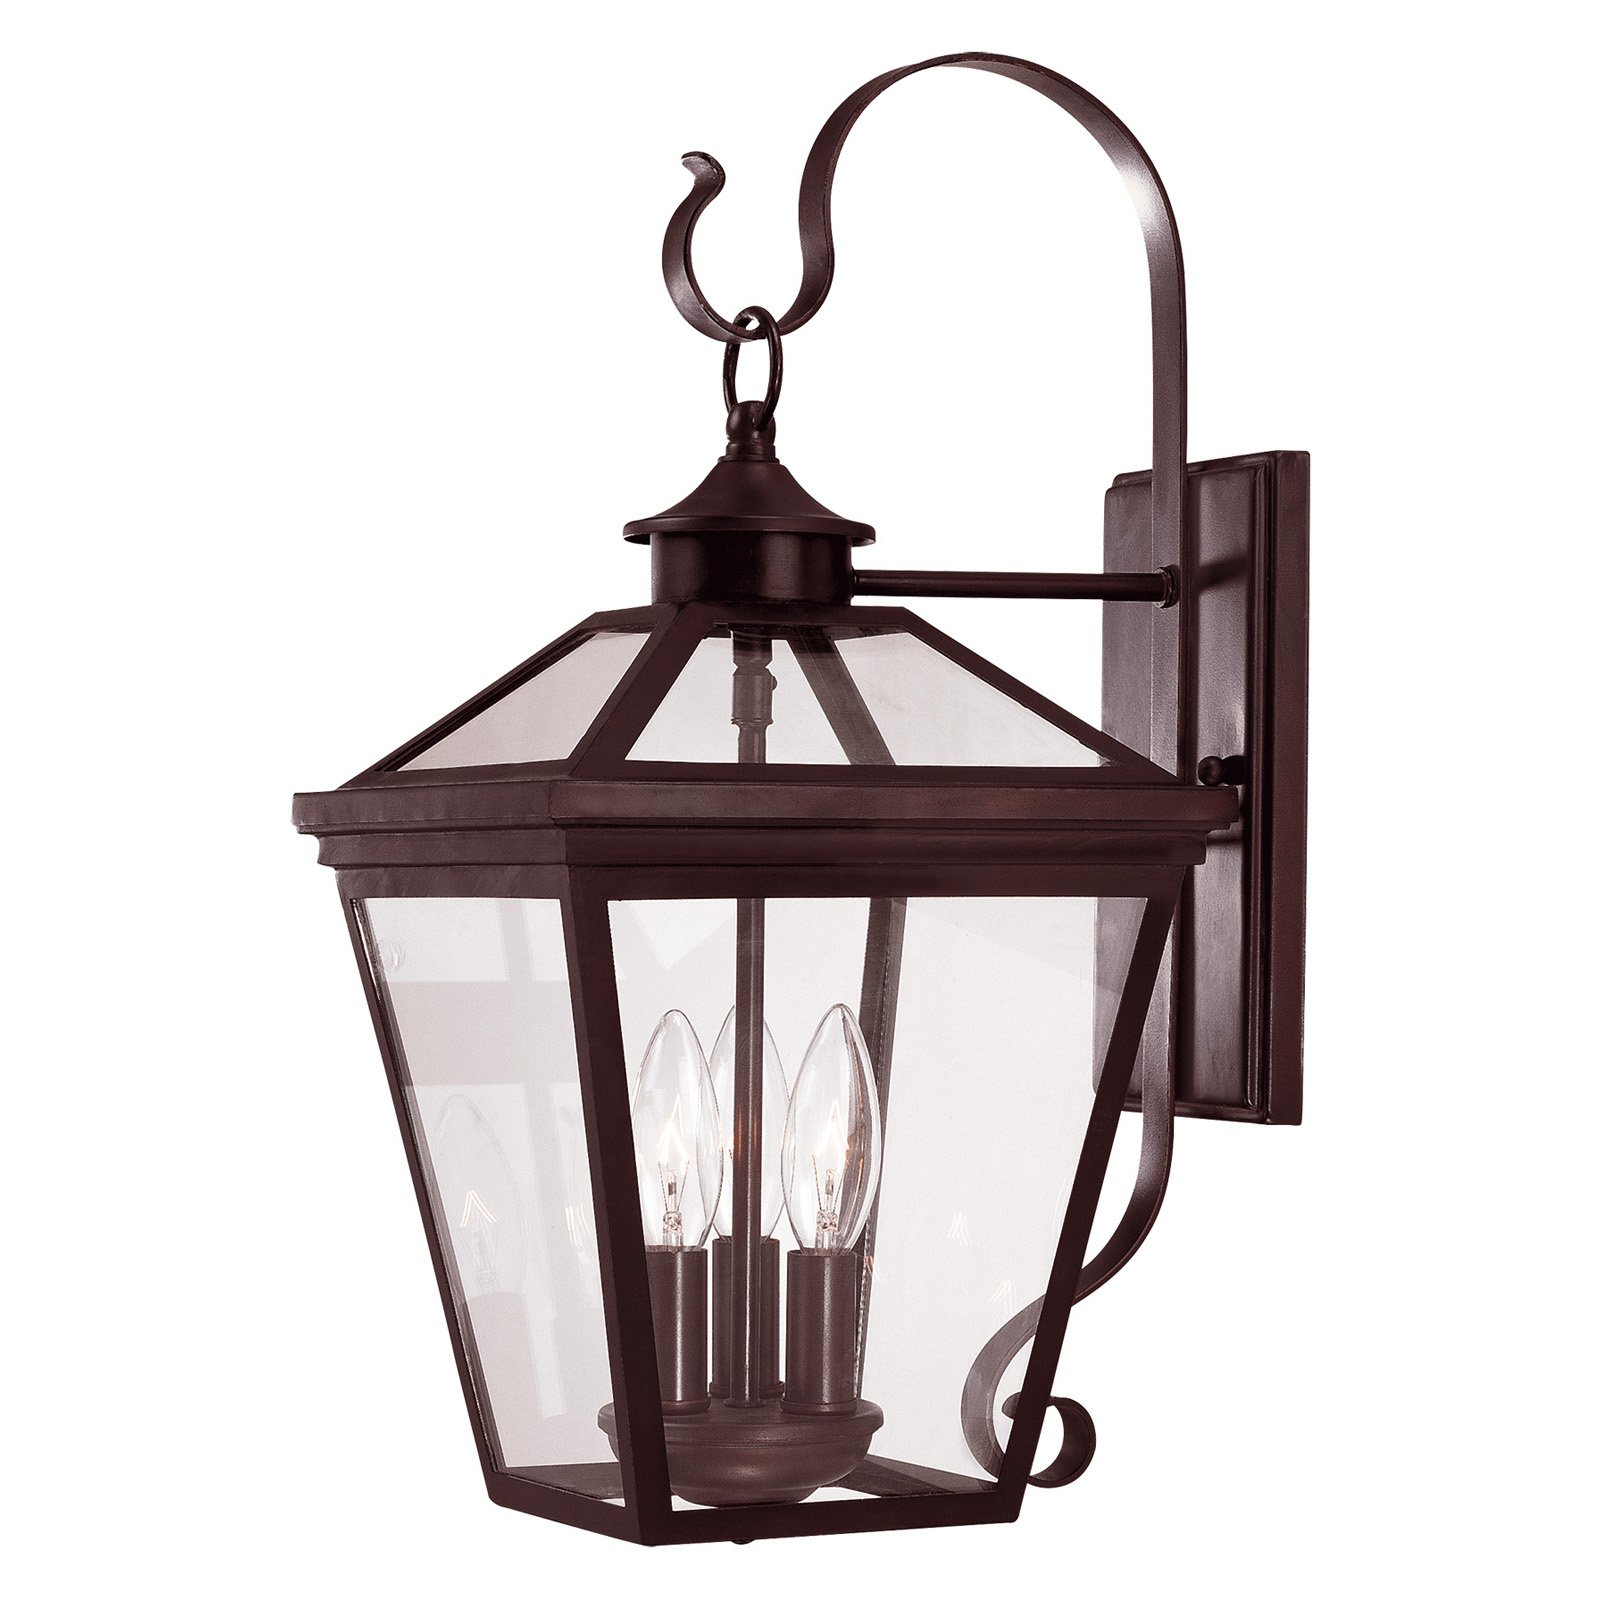 Savoy House Ellijay 5-141 Outdoor Wall Lantern